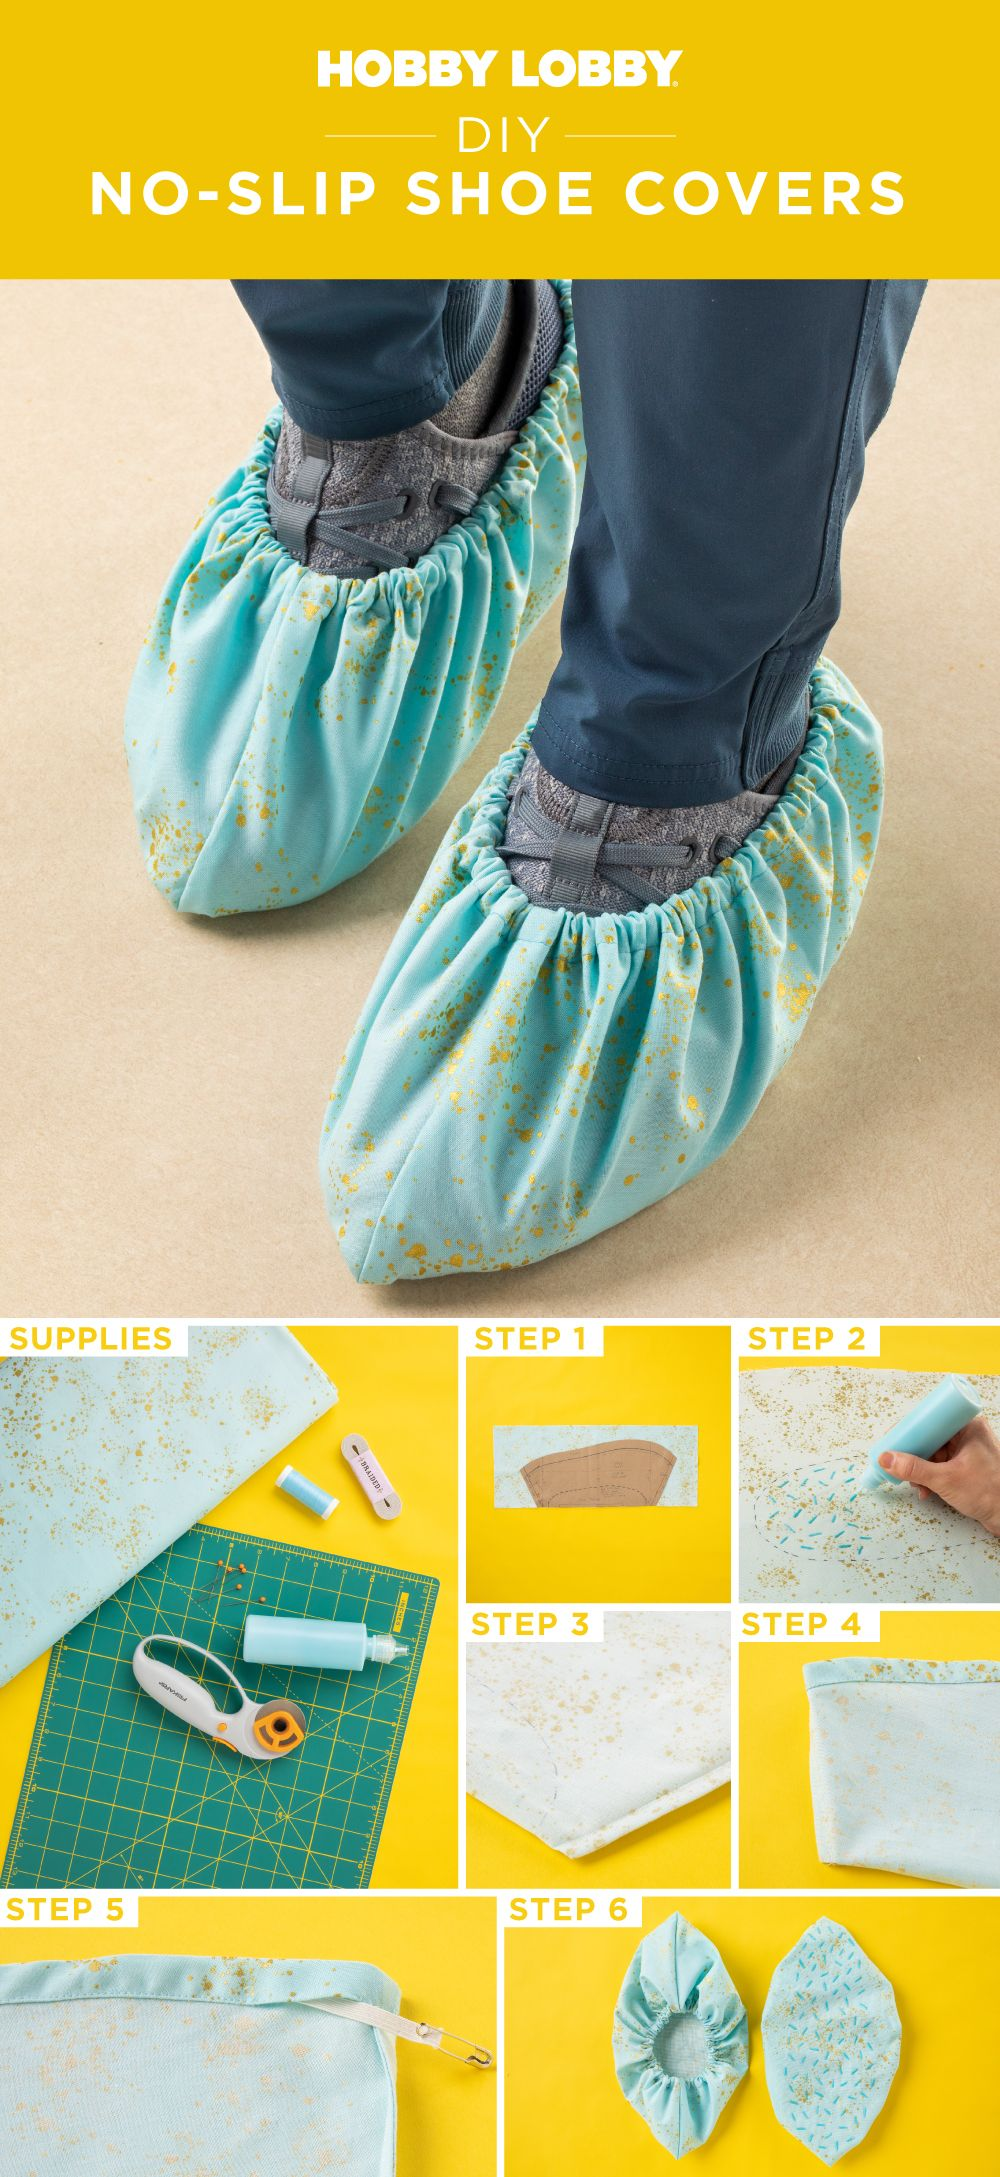 How To Make Shoe Covers : covers, No-Slip, Covers, Covers,, Shoes,, Shoes